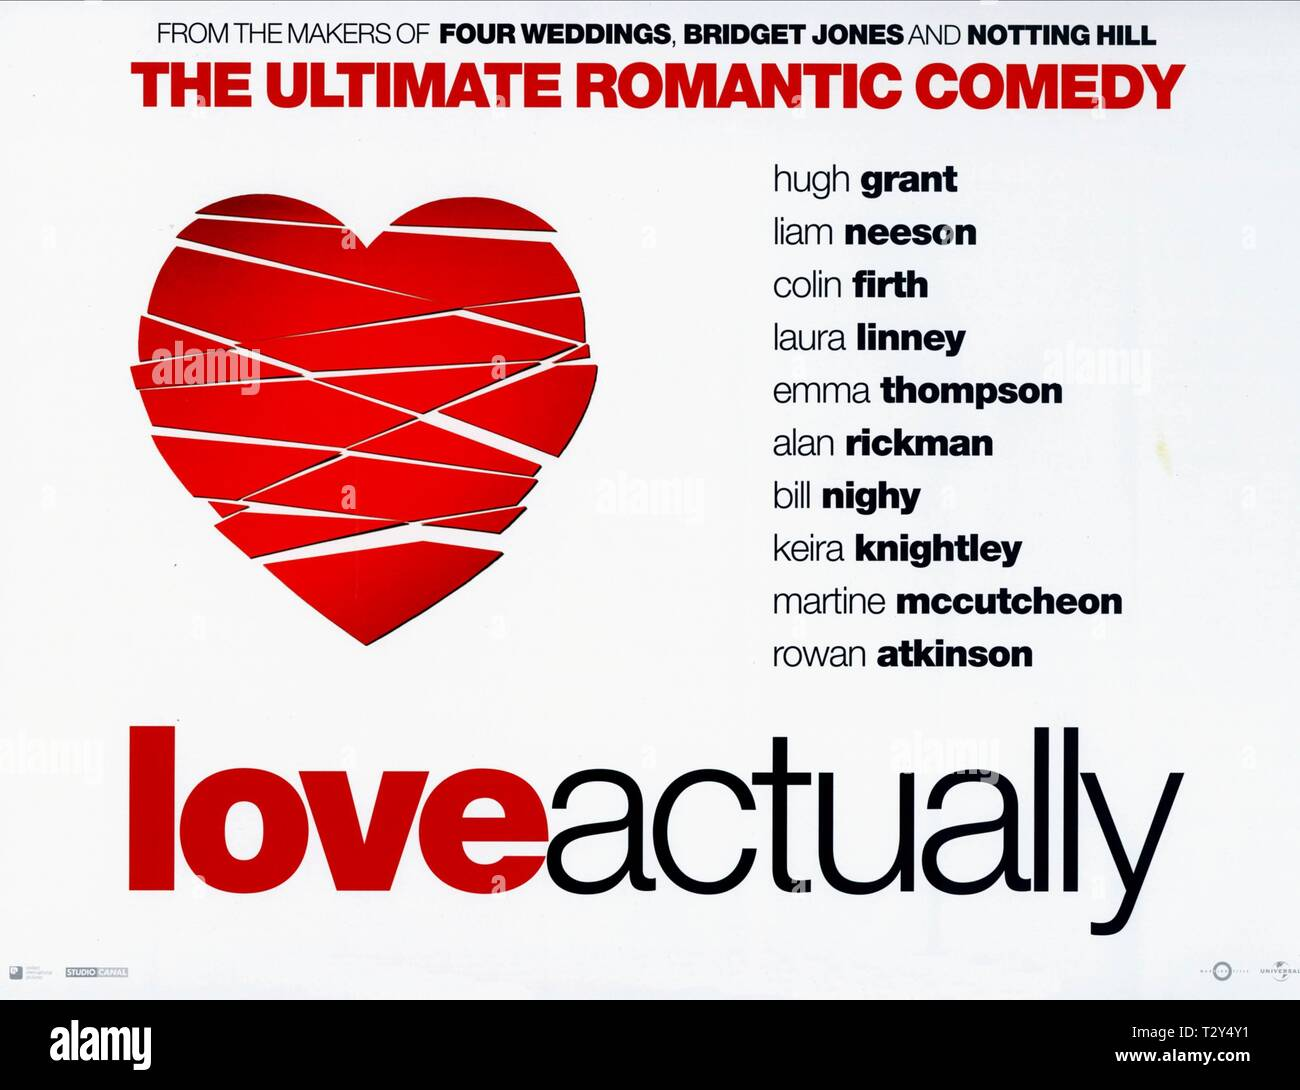 FILM POSTER, LOVE ACTUALLY, 2003 - Stock Image